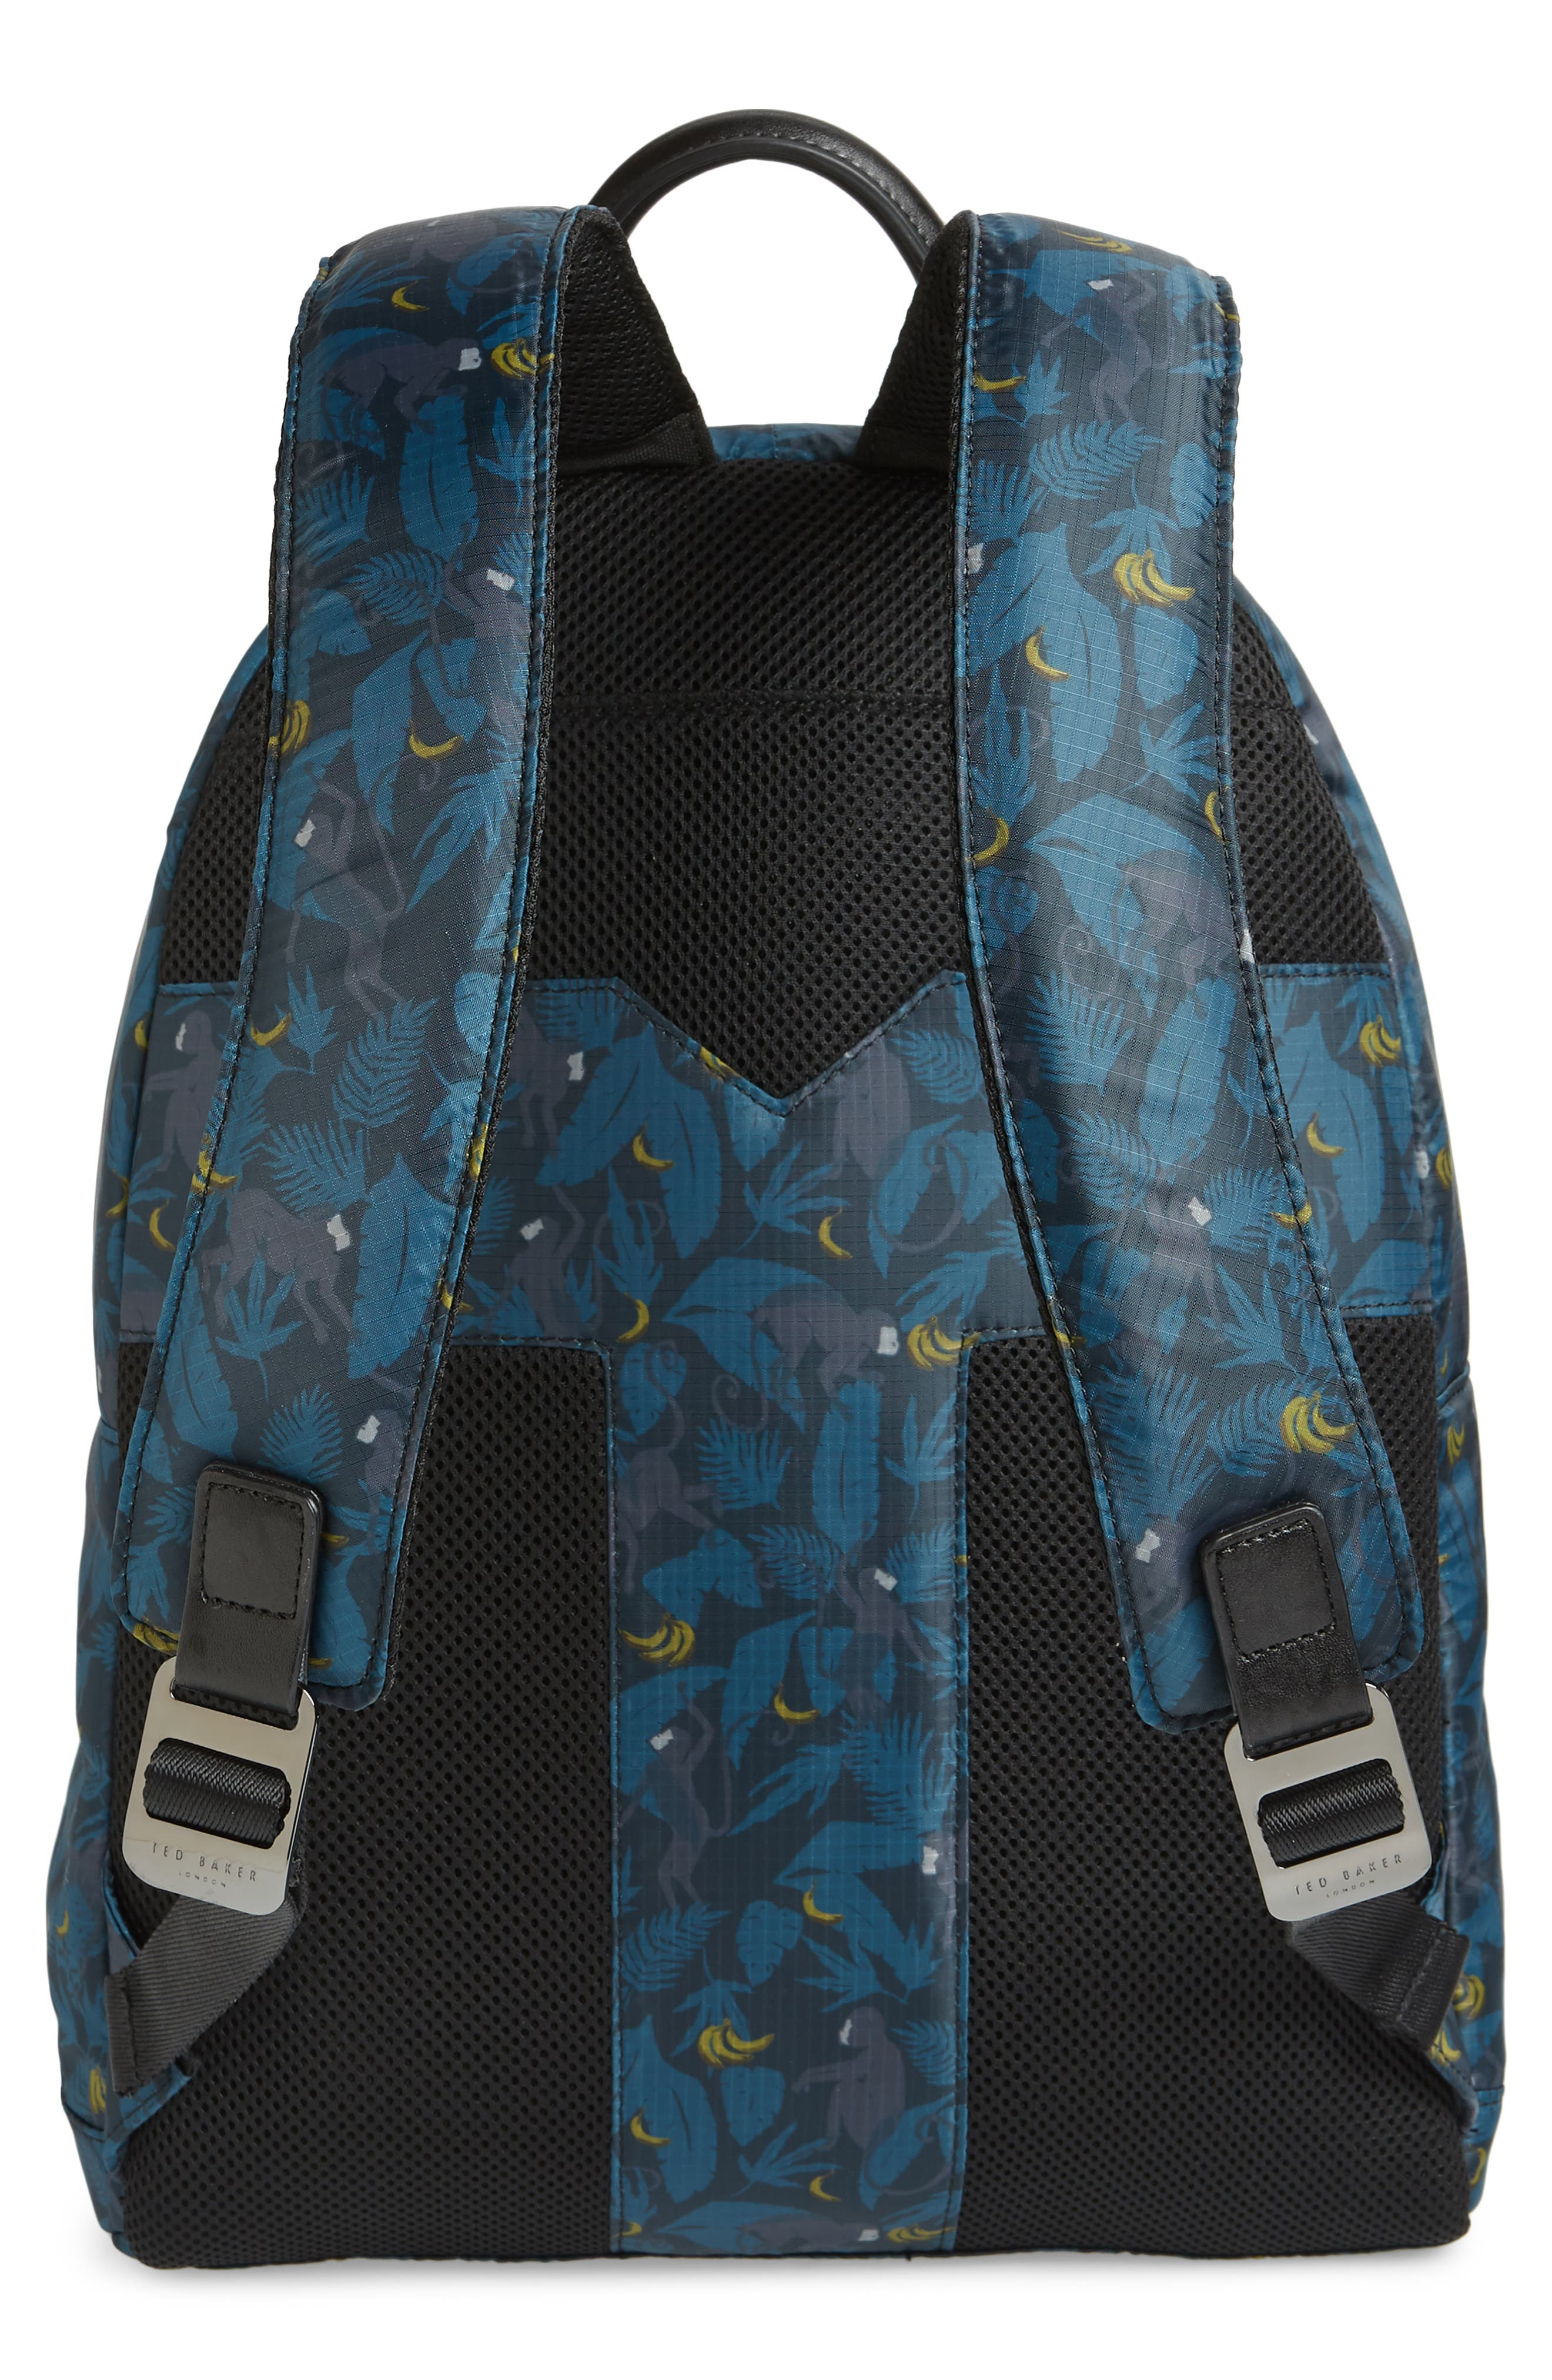 Primate Print Backpack,                             Alternate thumbnail 3, color,                             NAVY